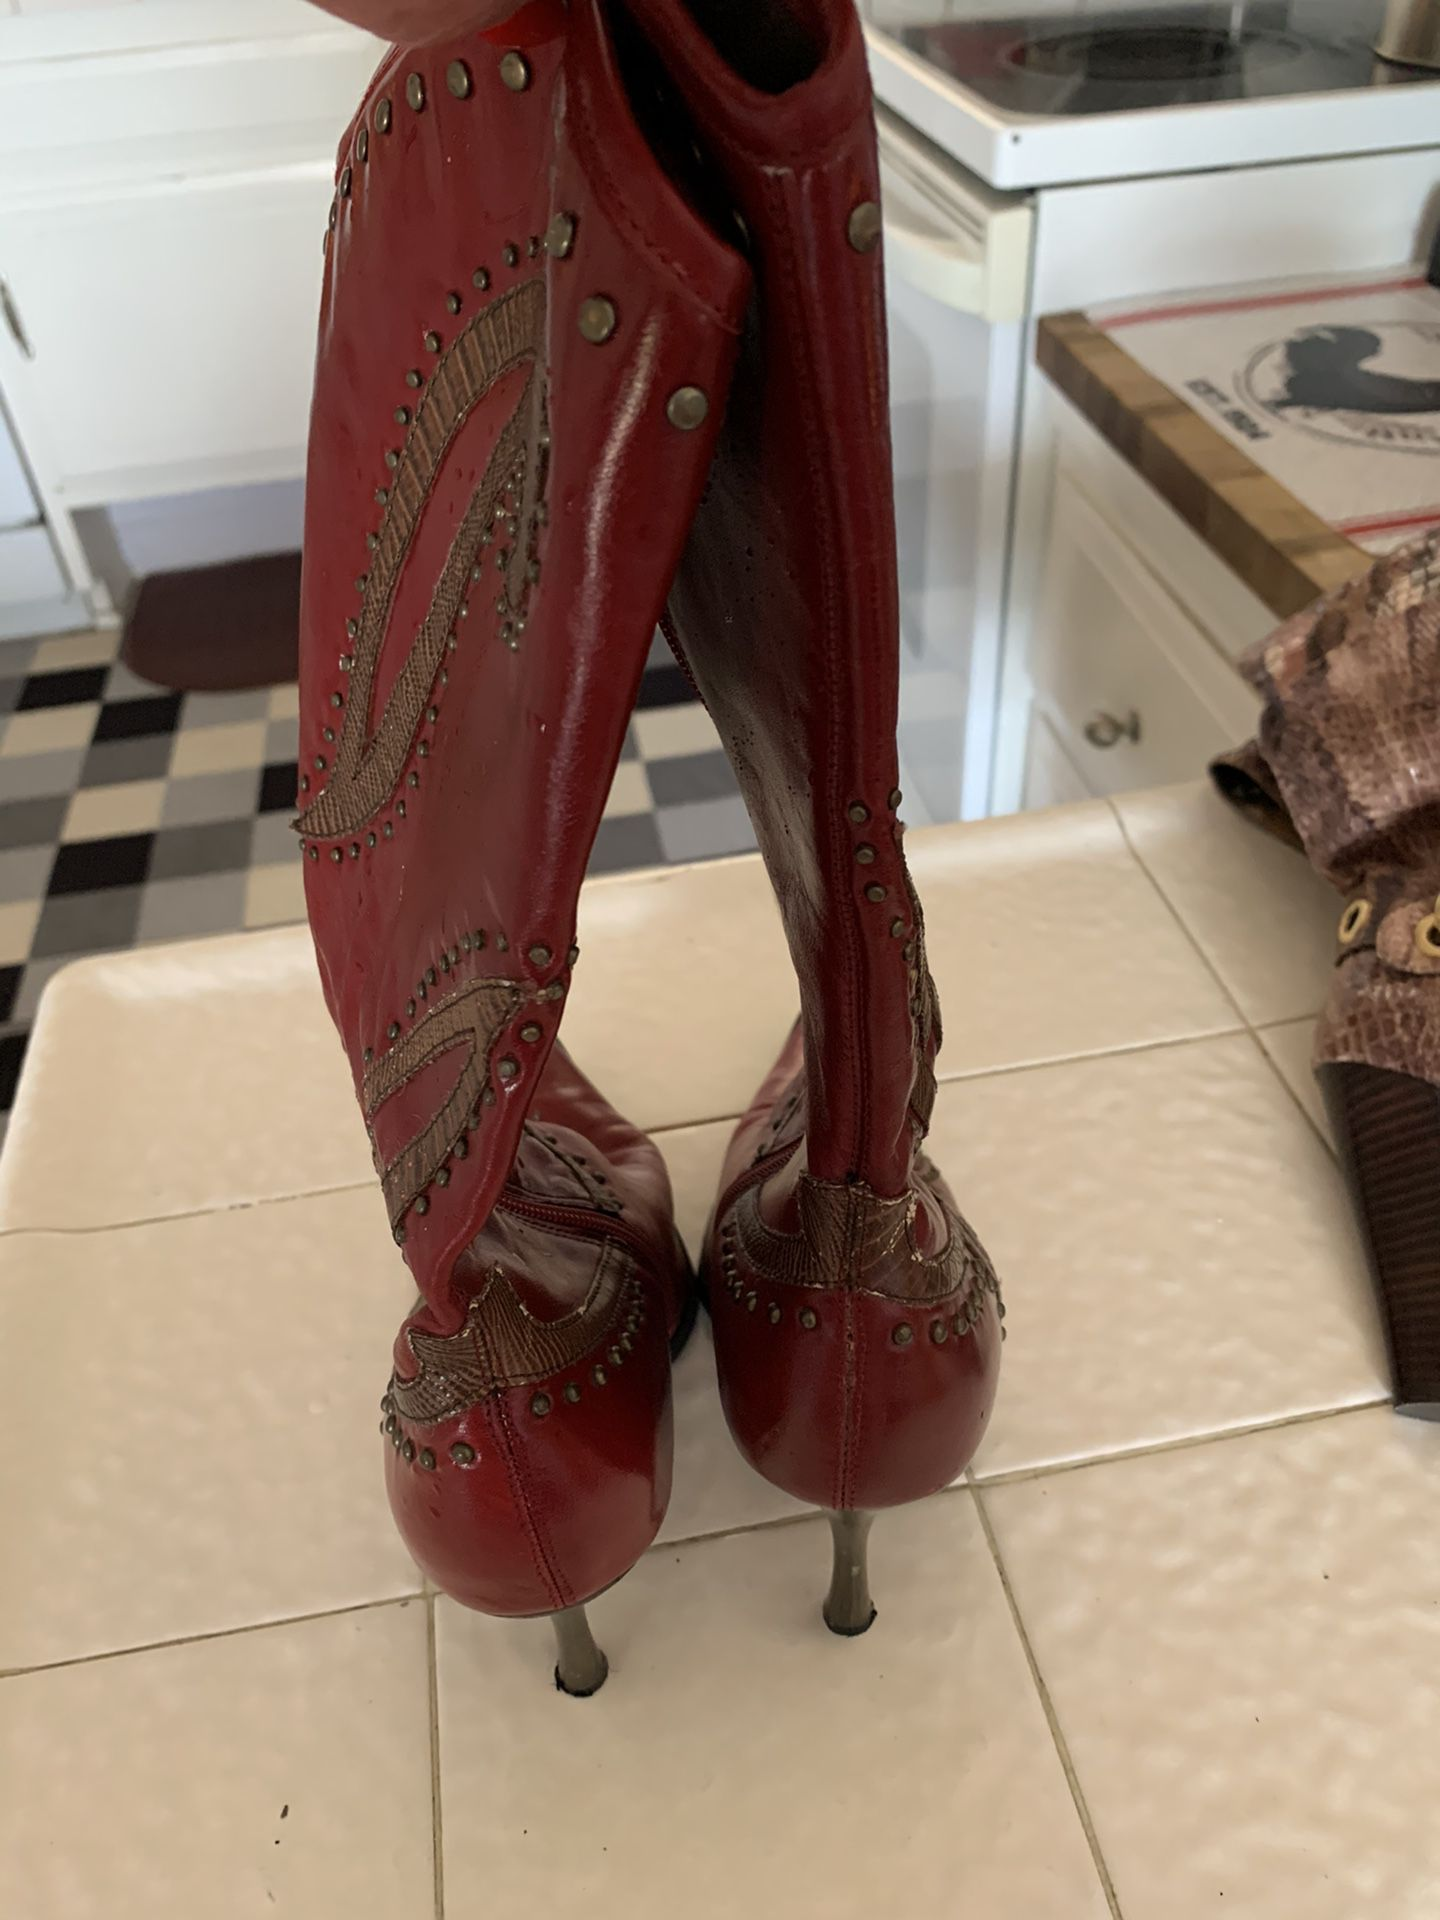 Dollhouse red stud boots Size 71/2-8